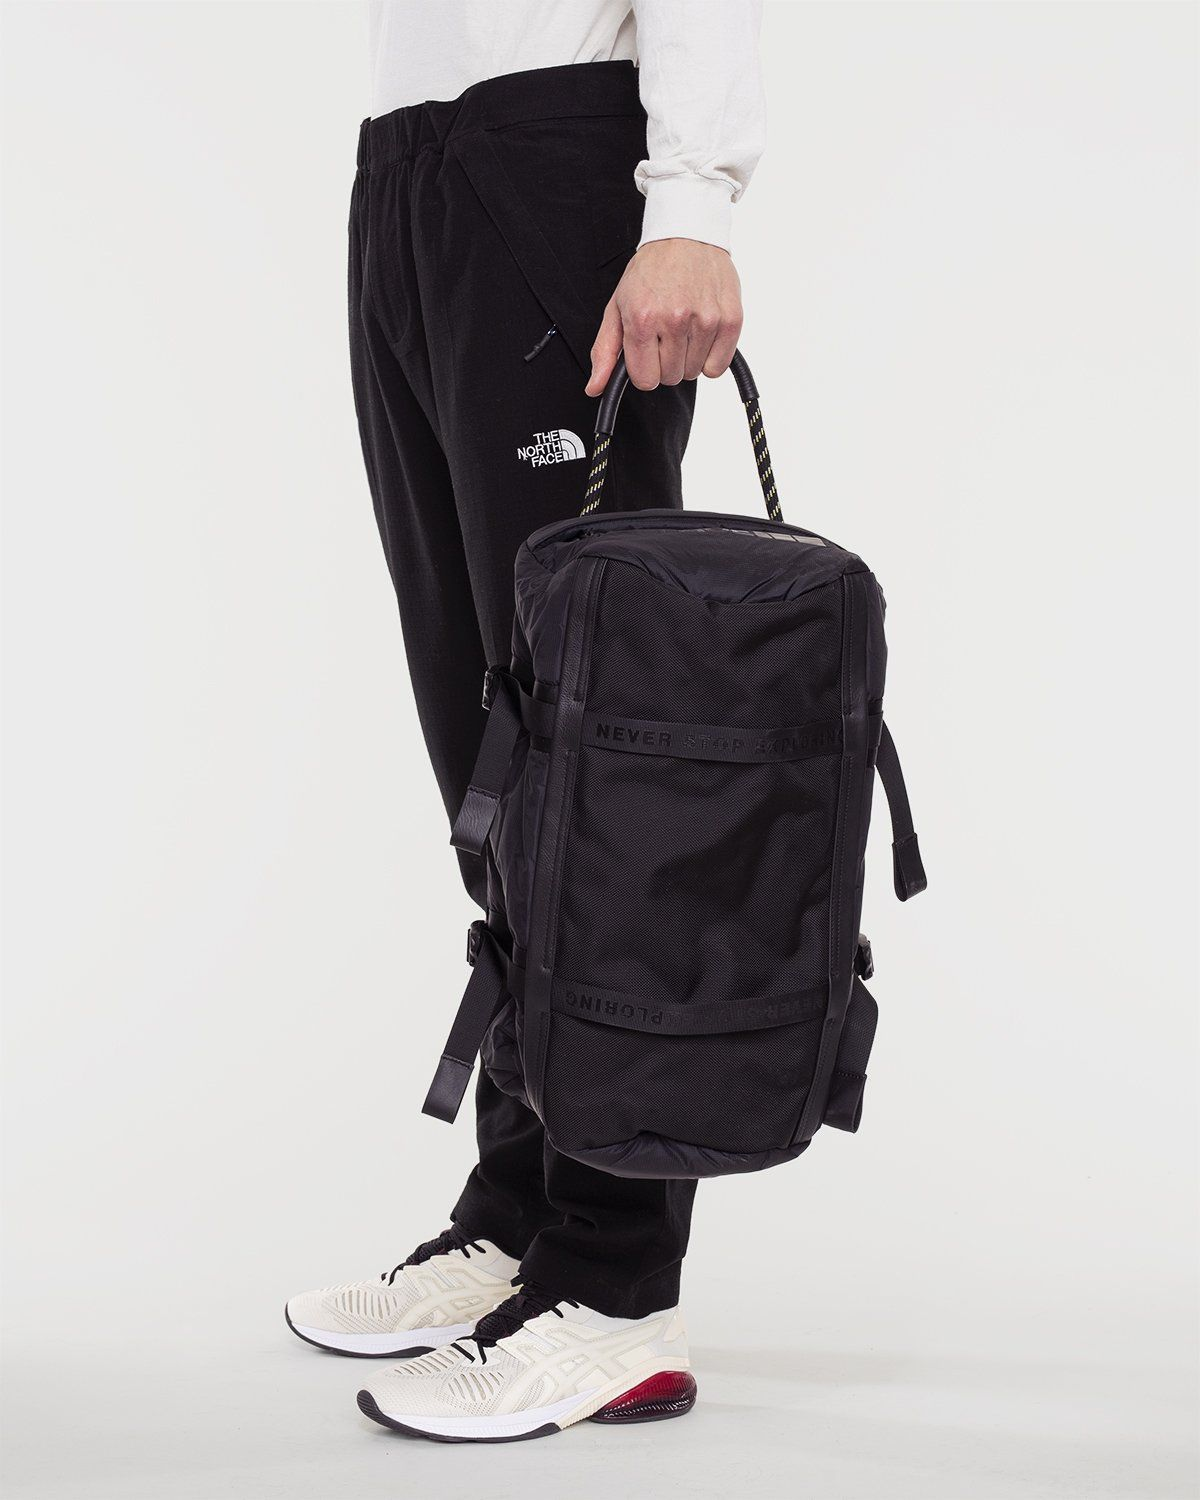 The North Face Black Series - Base Camp Duffel Black - Image 4